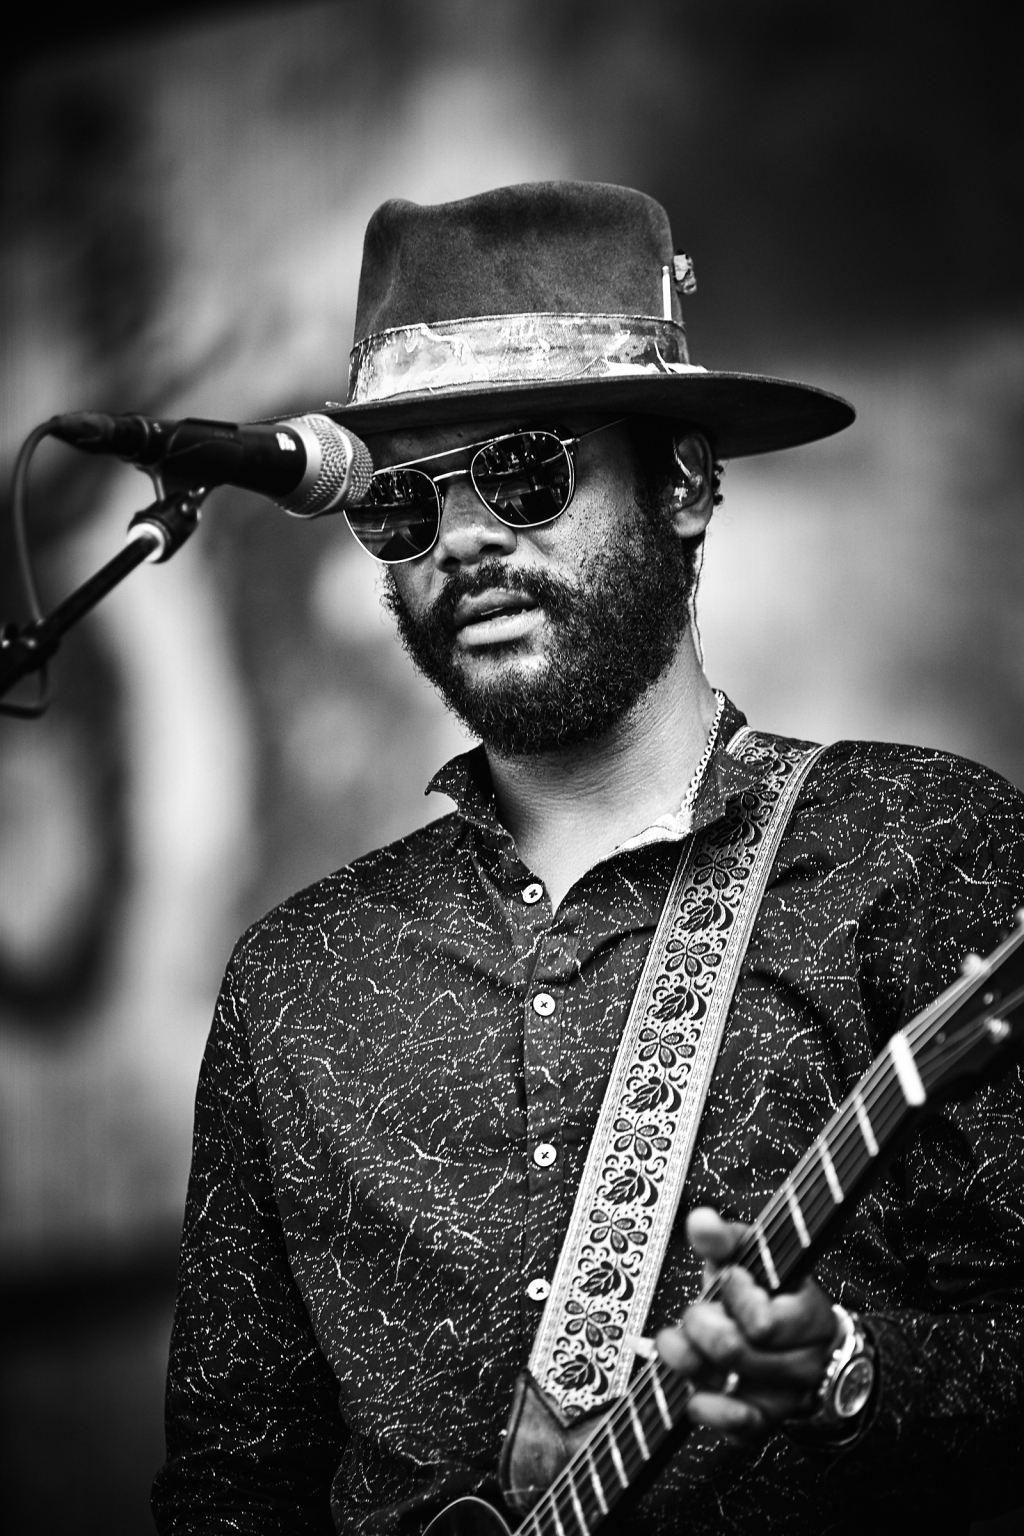 Gary Clark Jr. performs at BottleRock in Napa Valley, CA on May 25th, 2019.